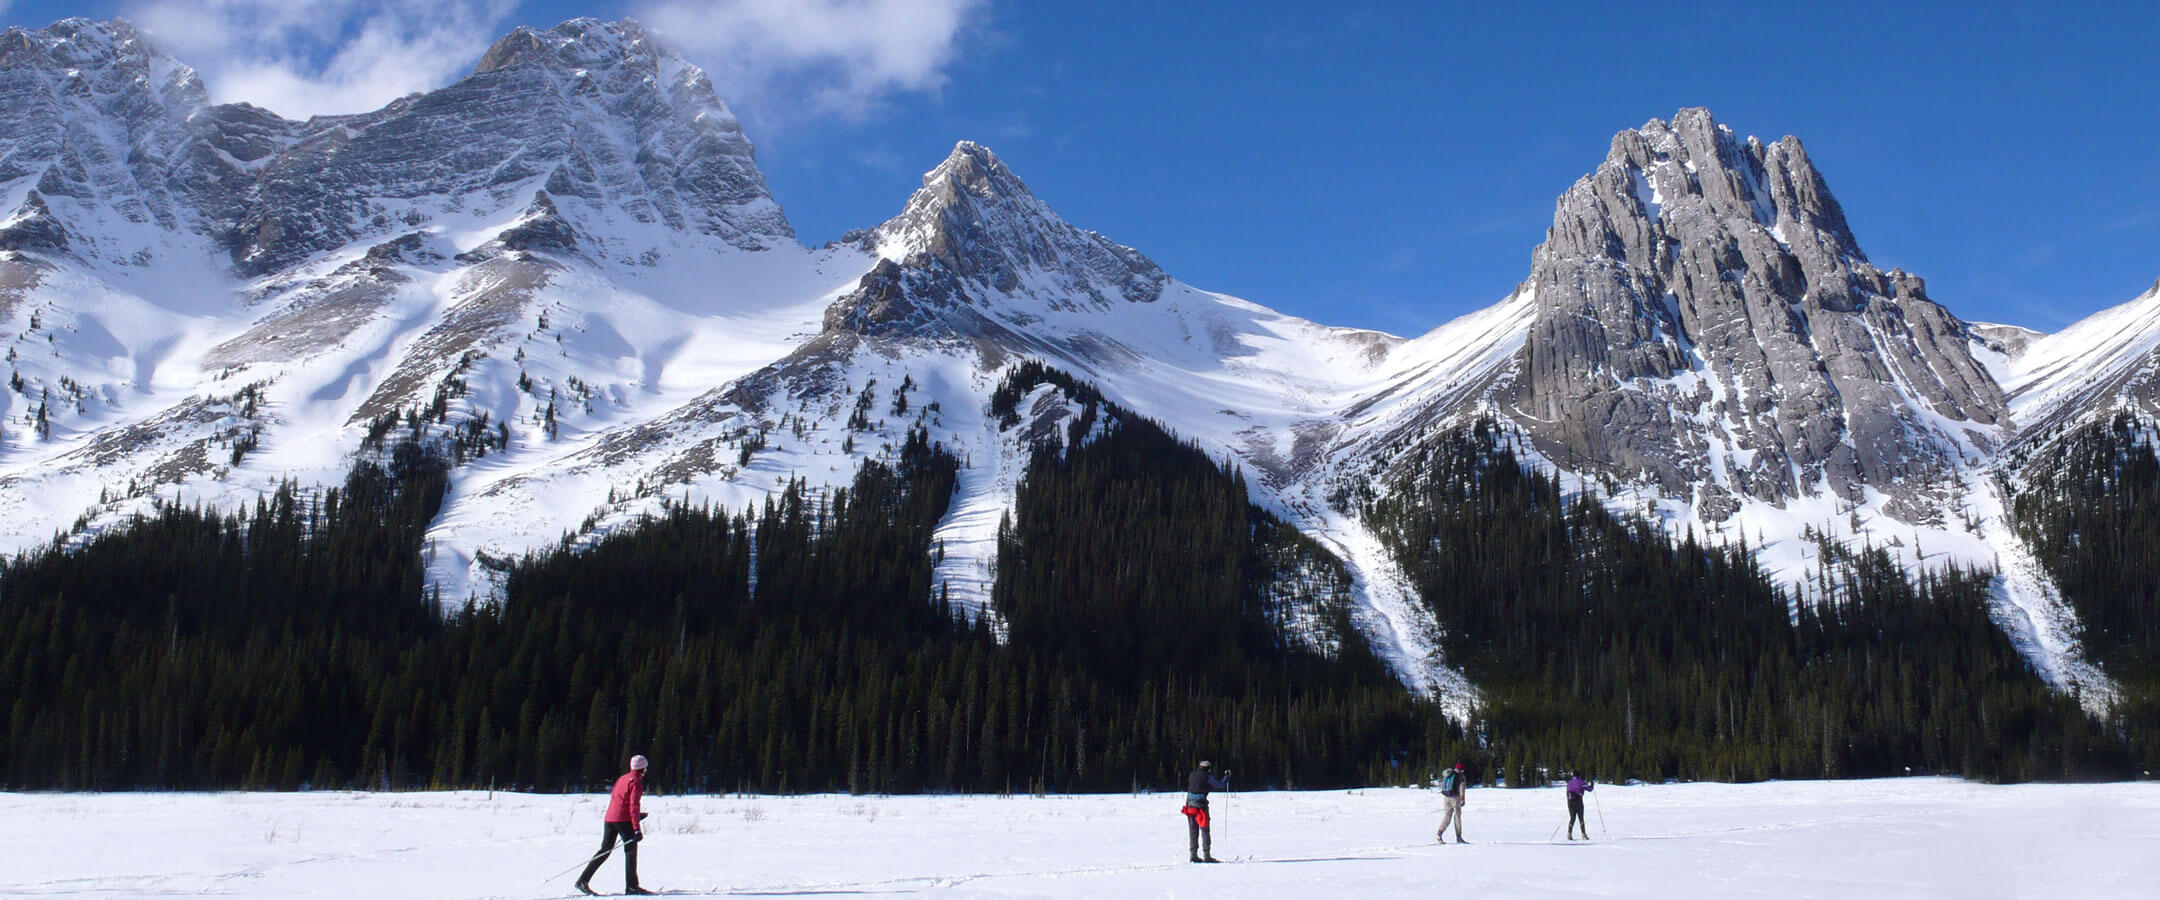 Winter Ski Mountain in Alberta